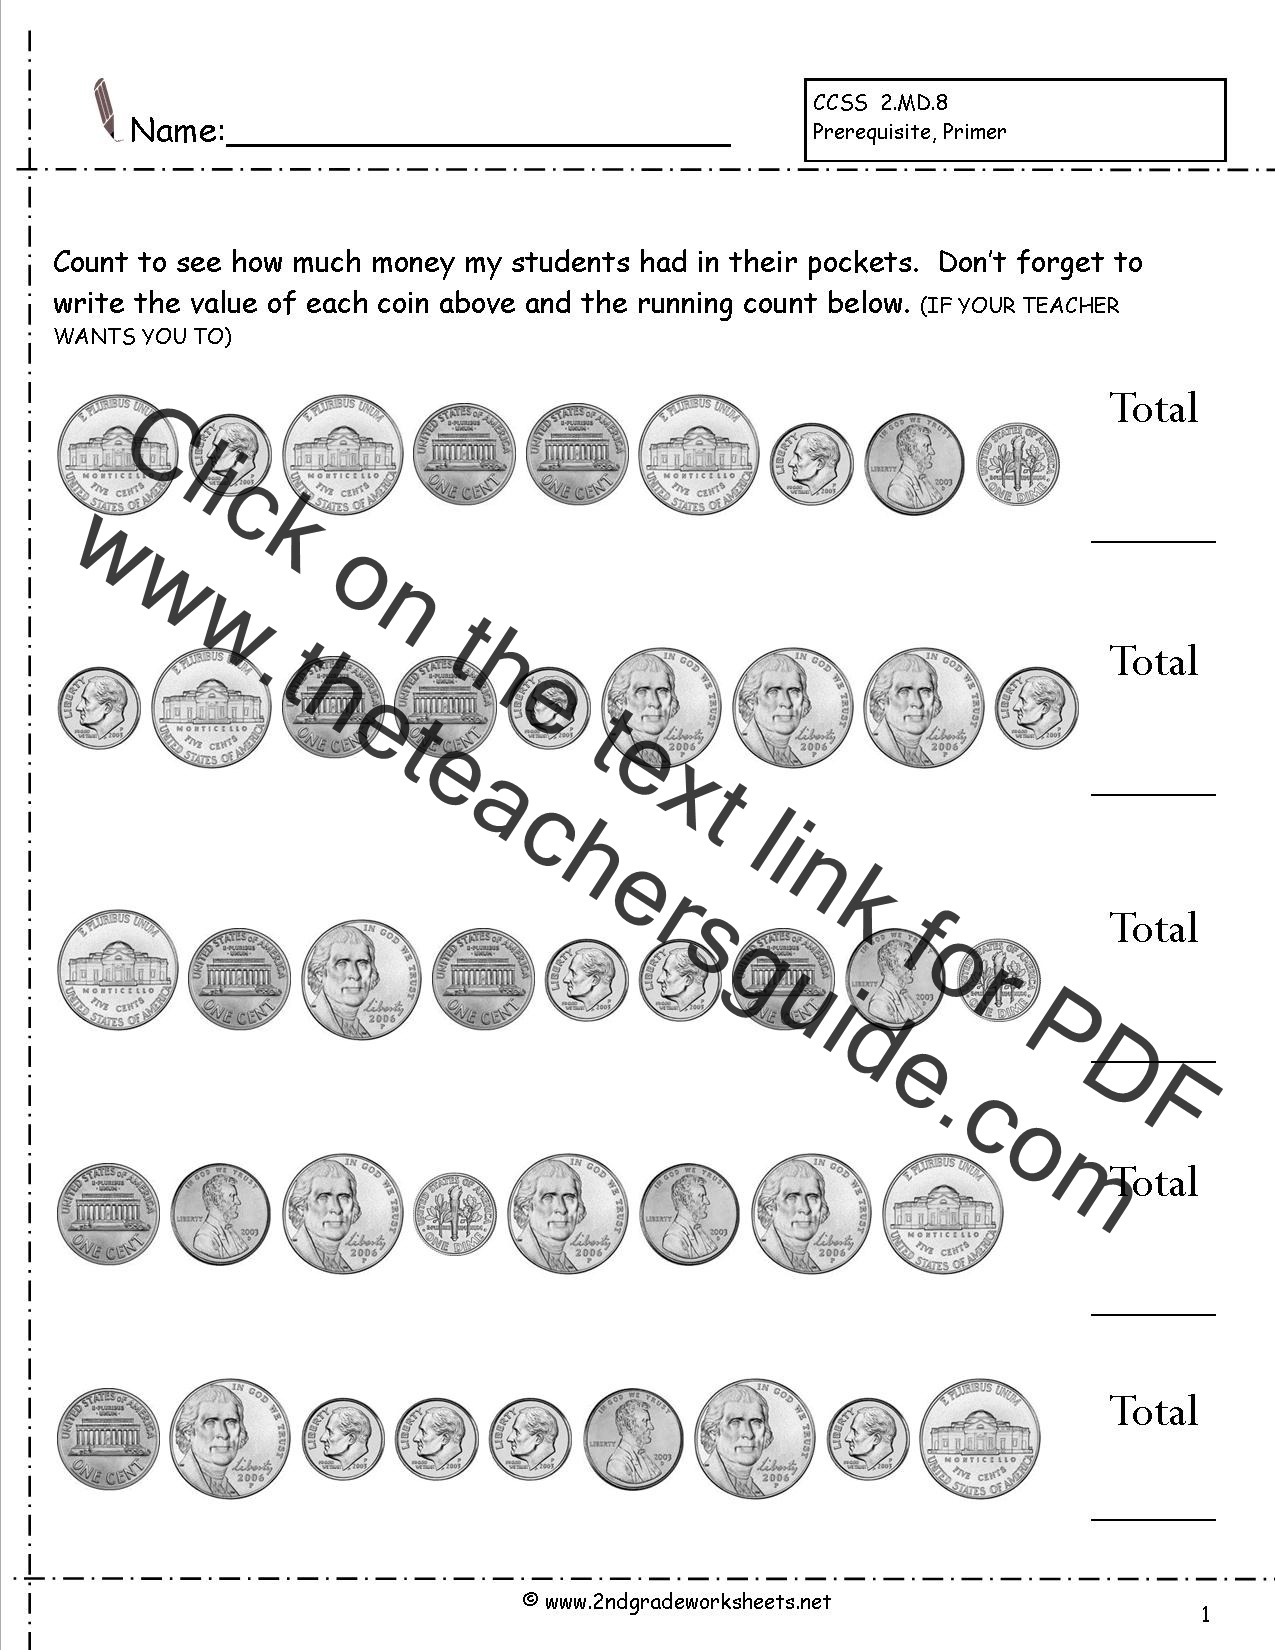 Counting Coins and Money Worksheets and Printouts – Printable 2nd Grade Worksheets